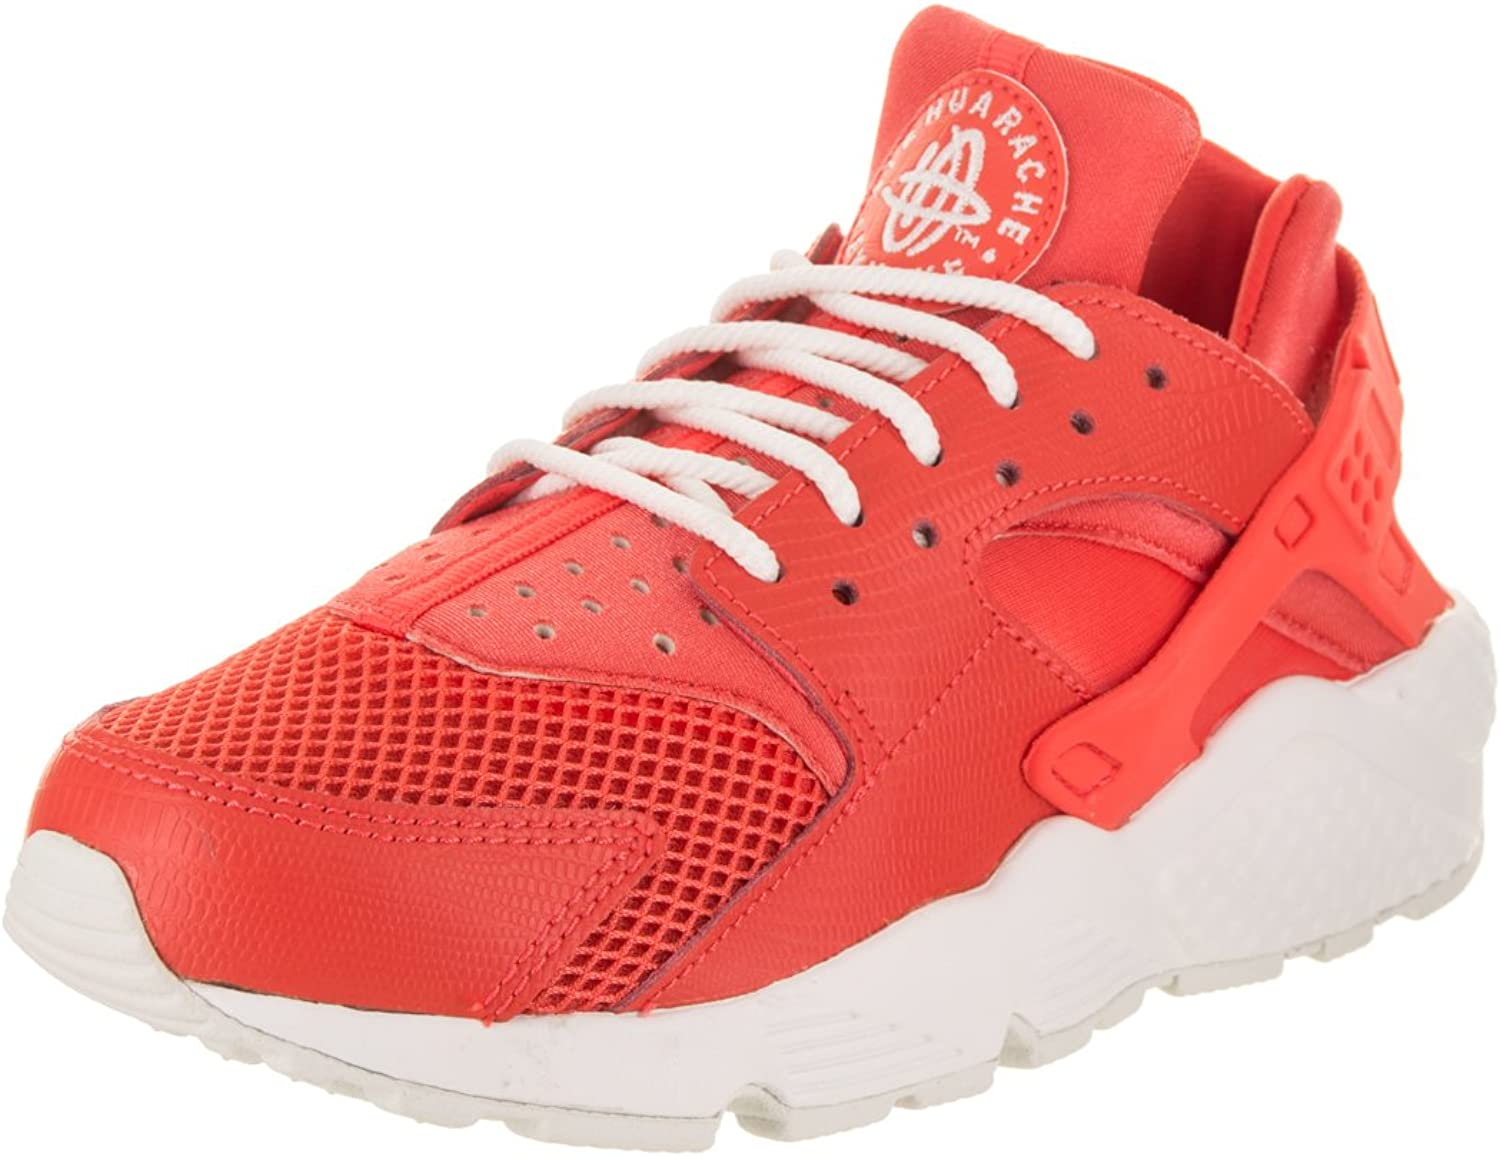 Nike Women's Air Huarache Run SE Running shoes